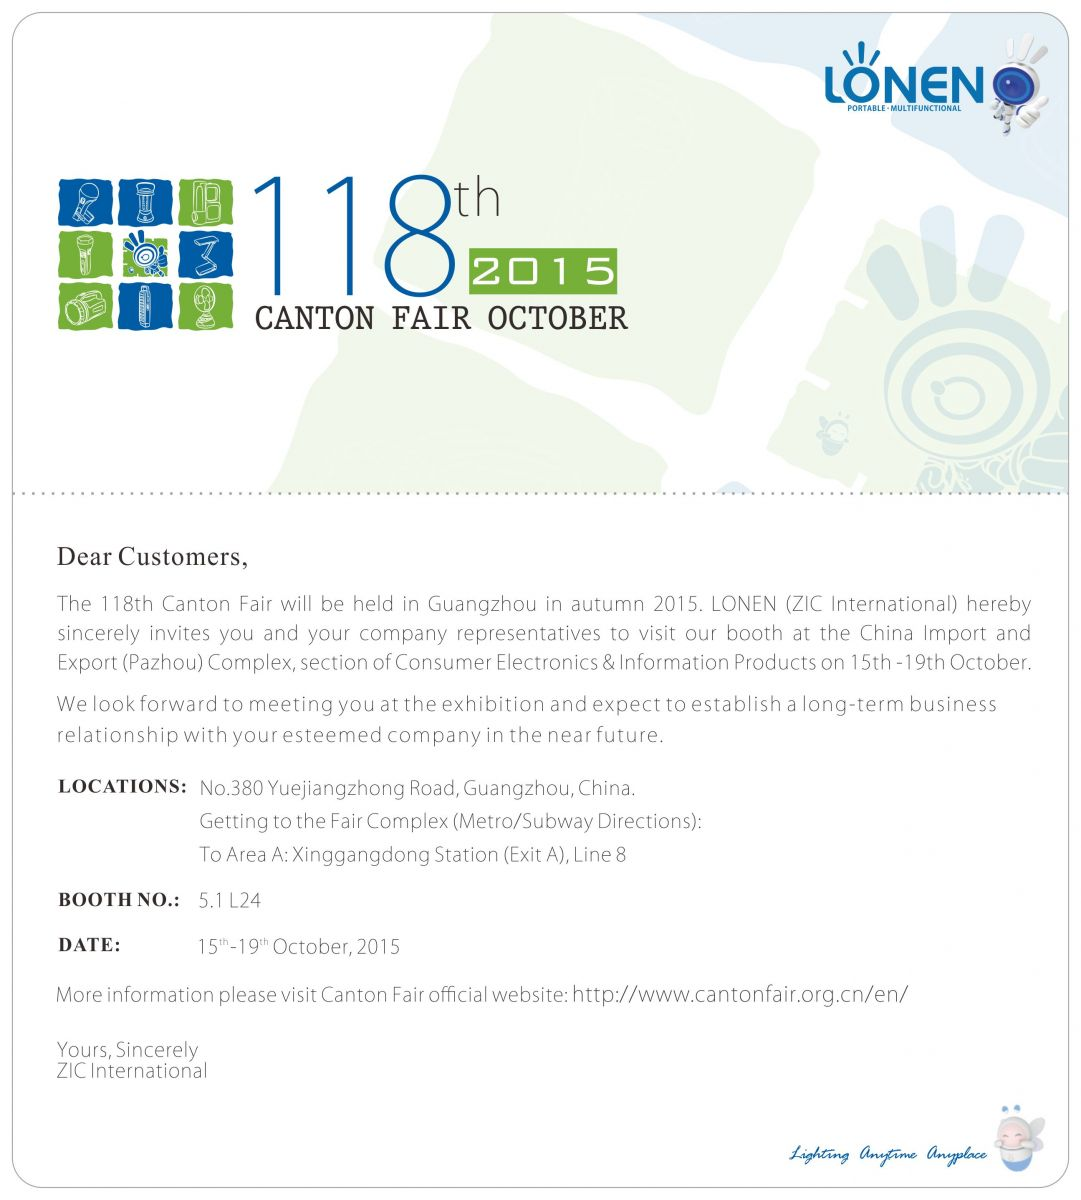 Lonen lighting rechargeable led flashlightslampslanterns invitation letter of 118th canton fair stopboris Choice Image